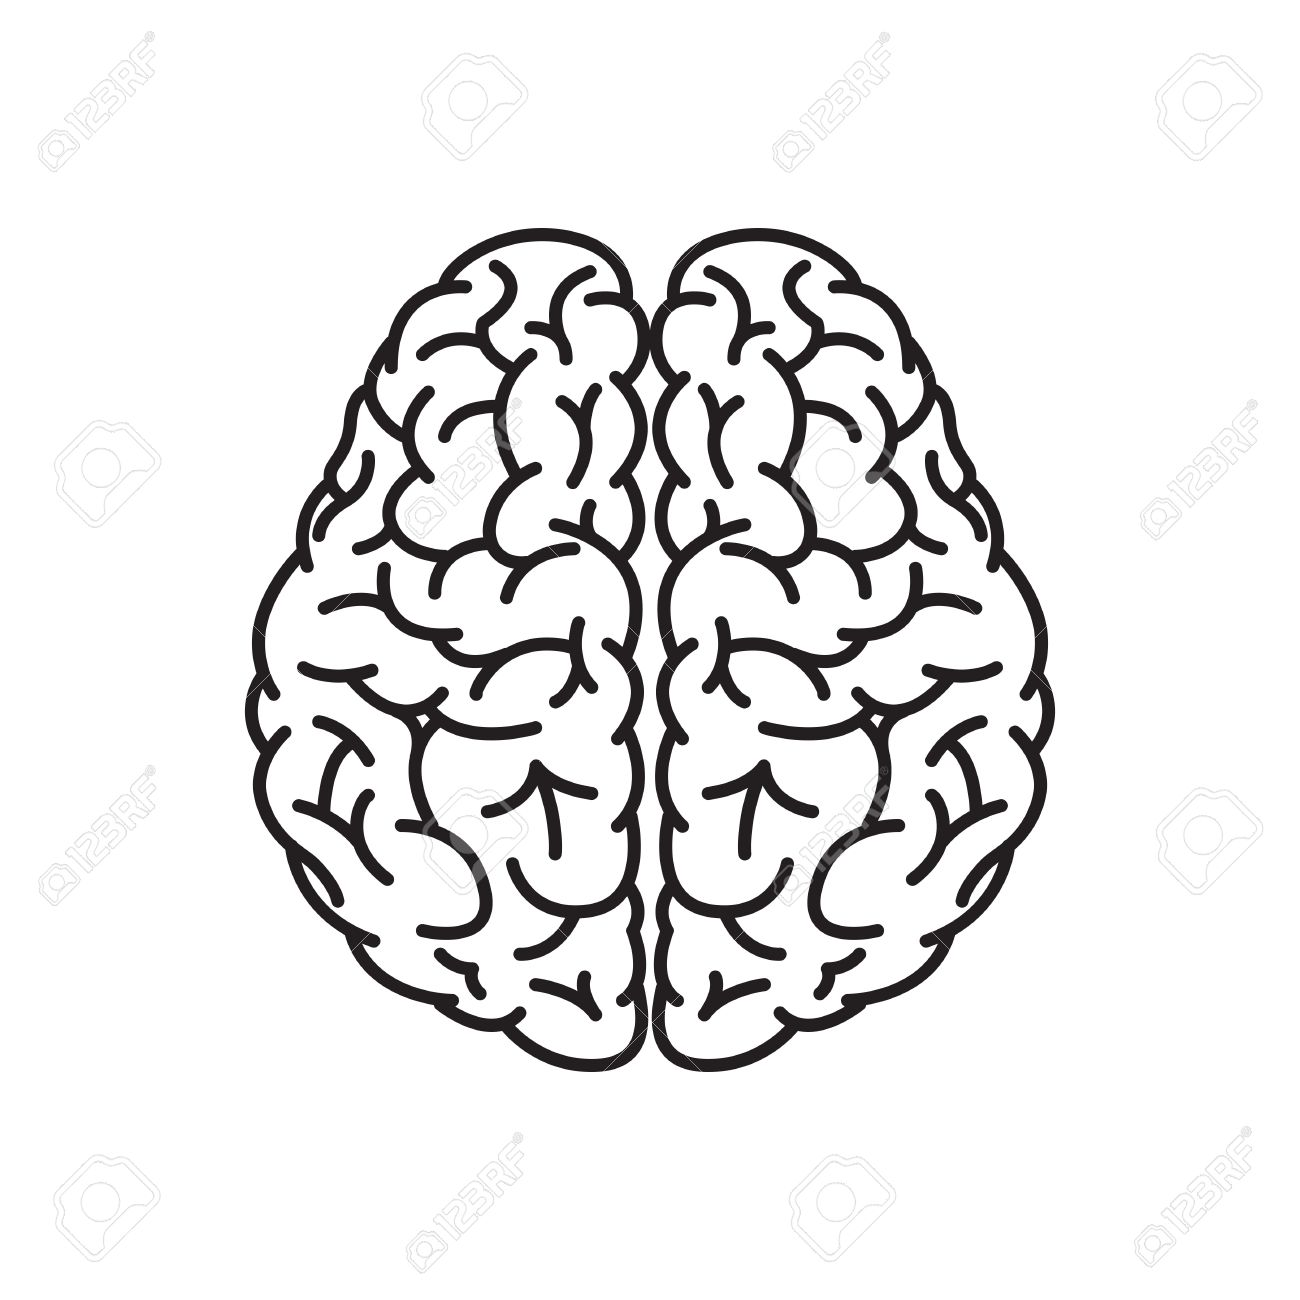 illustration of human brain outline from top view royalty free cliparts vectors and stock illustration image 55142828 illustration of human brain outline from top view